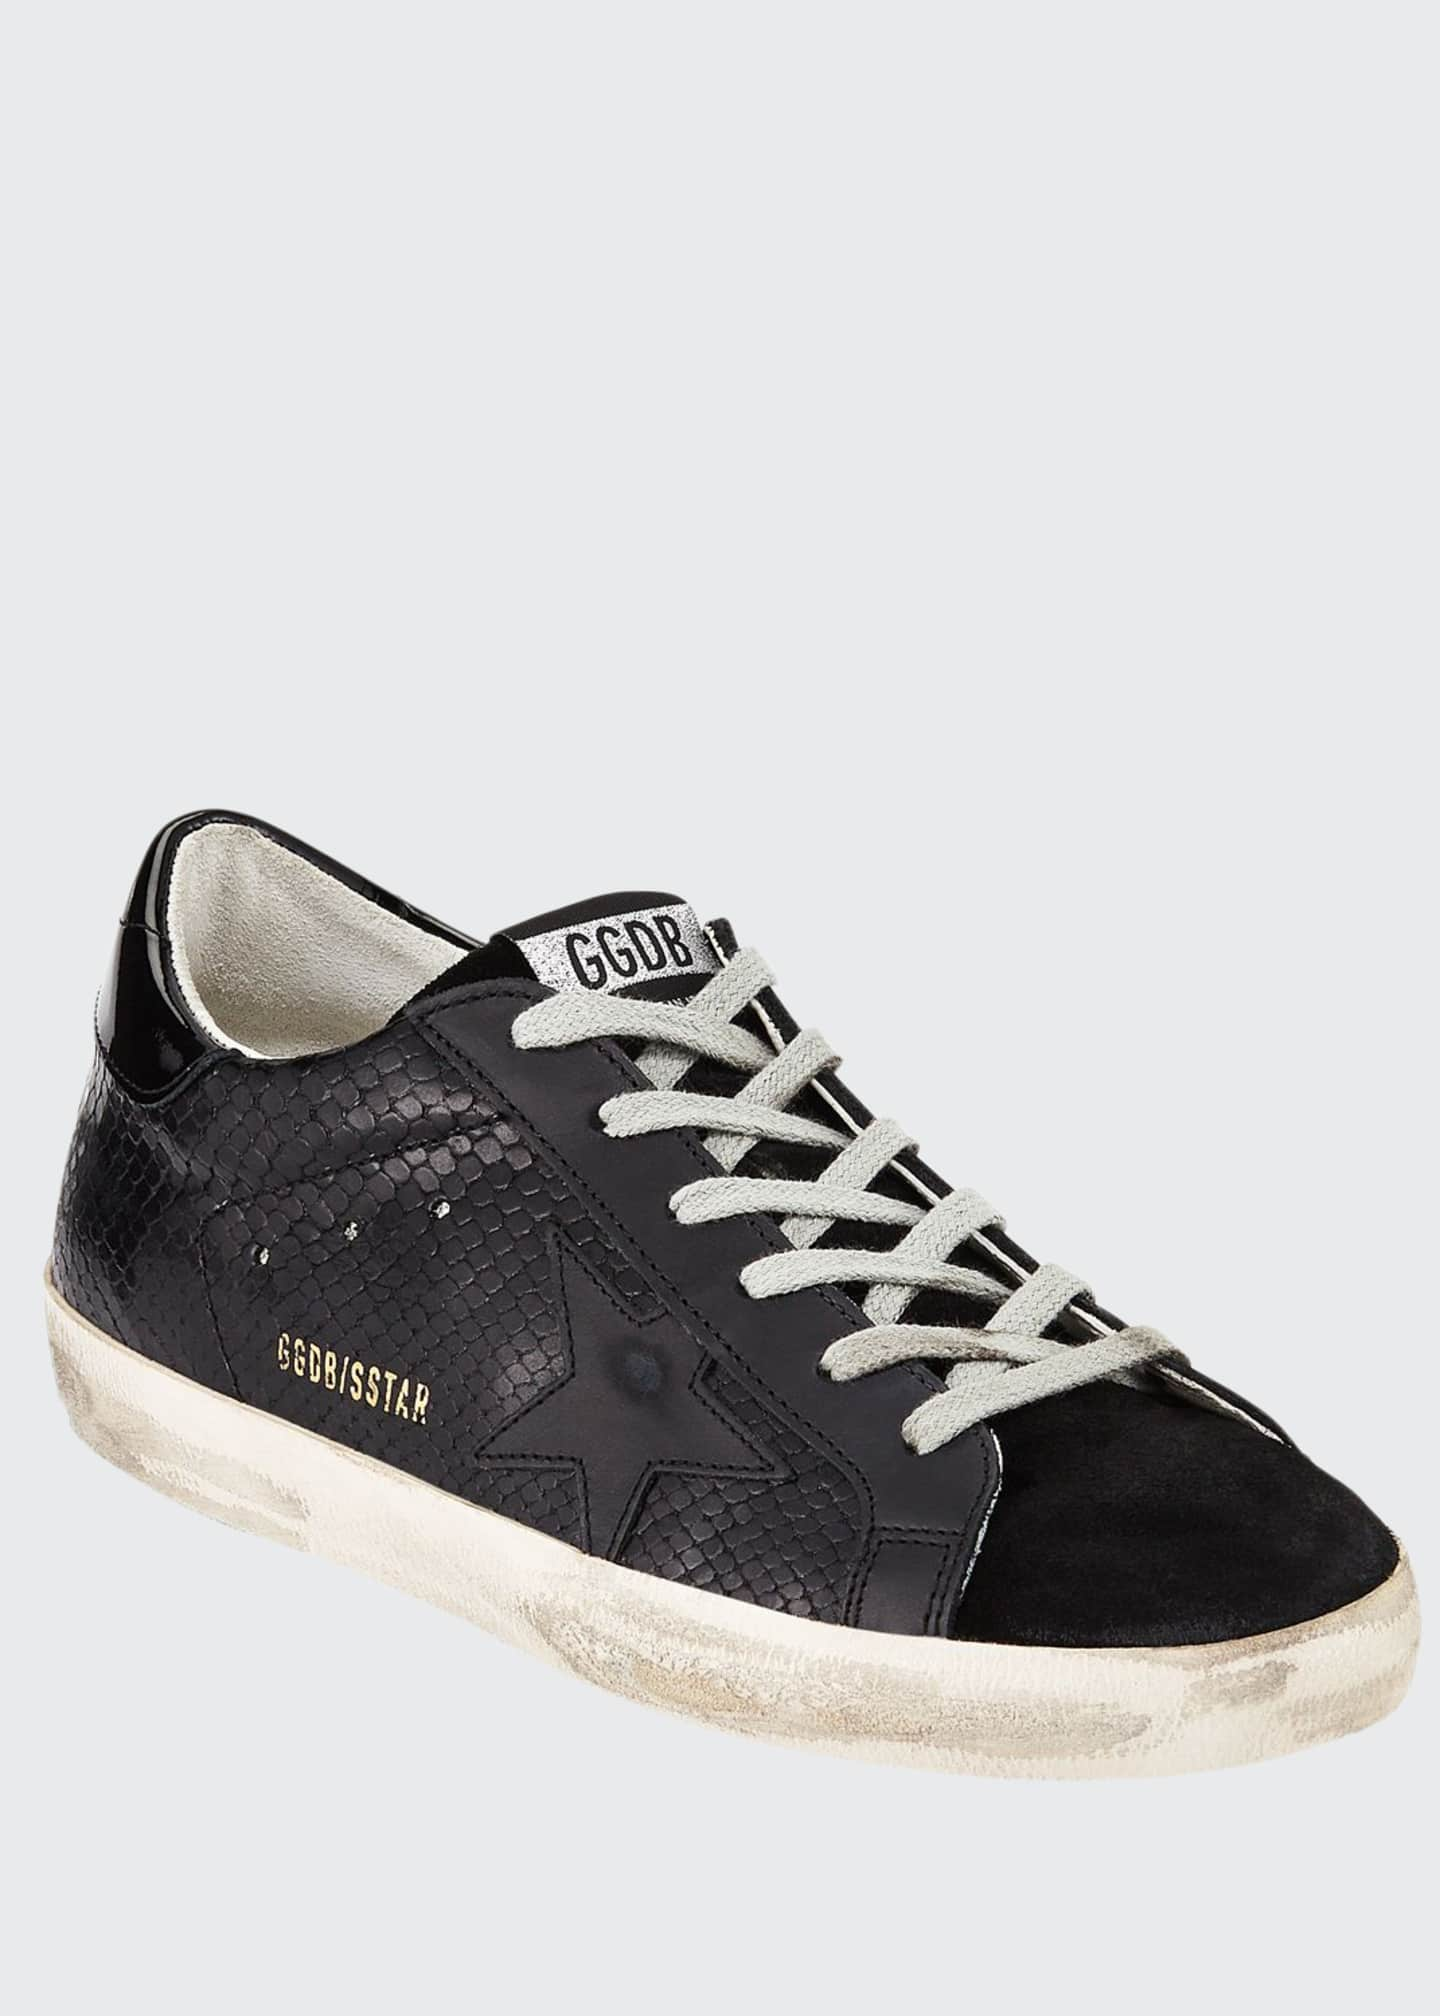 Image 1 of 3: Superstar Tonal Leather Sneakers